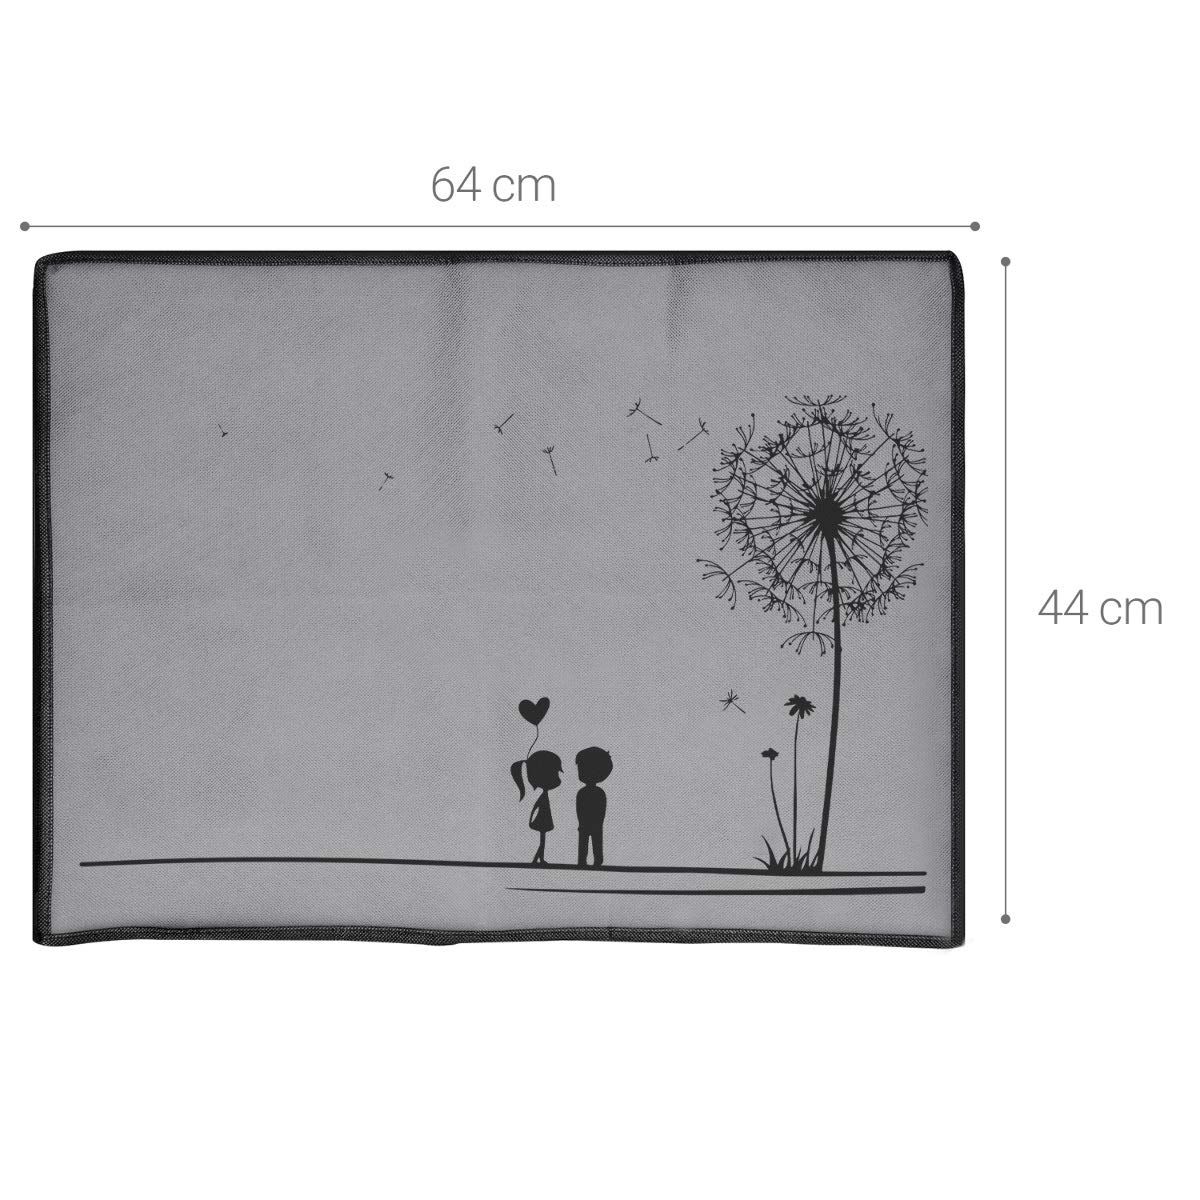 Dandelion Love Black//Light Grey kwmobile Monitor Cover Compatible with 24-26 Monitor Dust Monitor Case Screen Display Protector